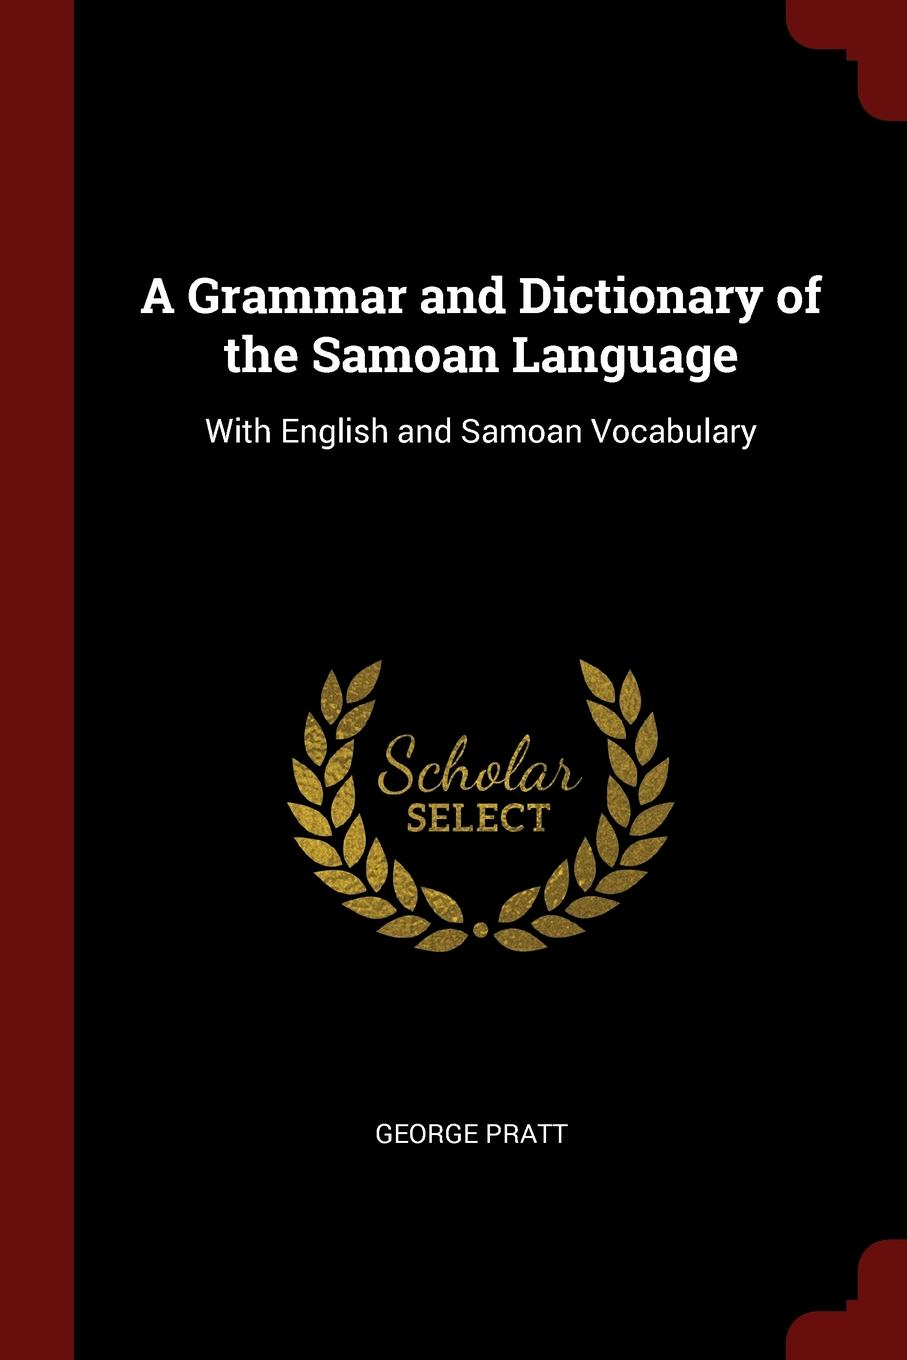 George Pratt A Grammar and Dictionary of the Samoan Language. With English Vocabulary